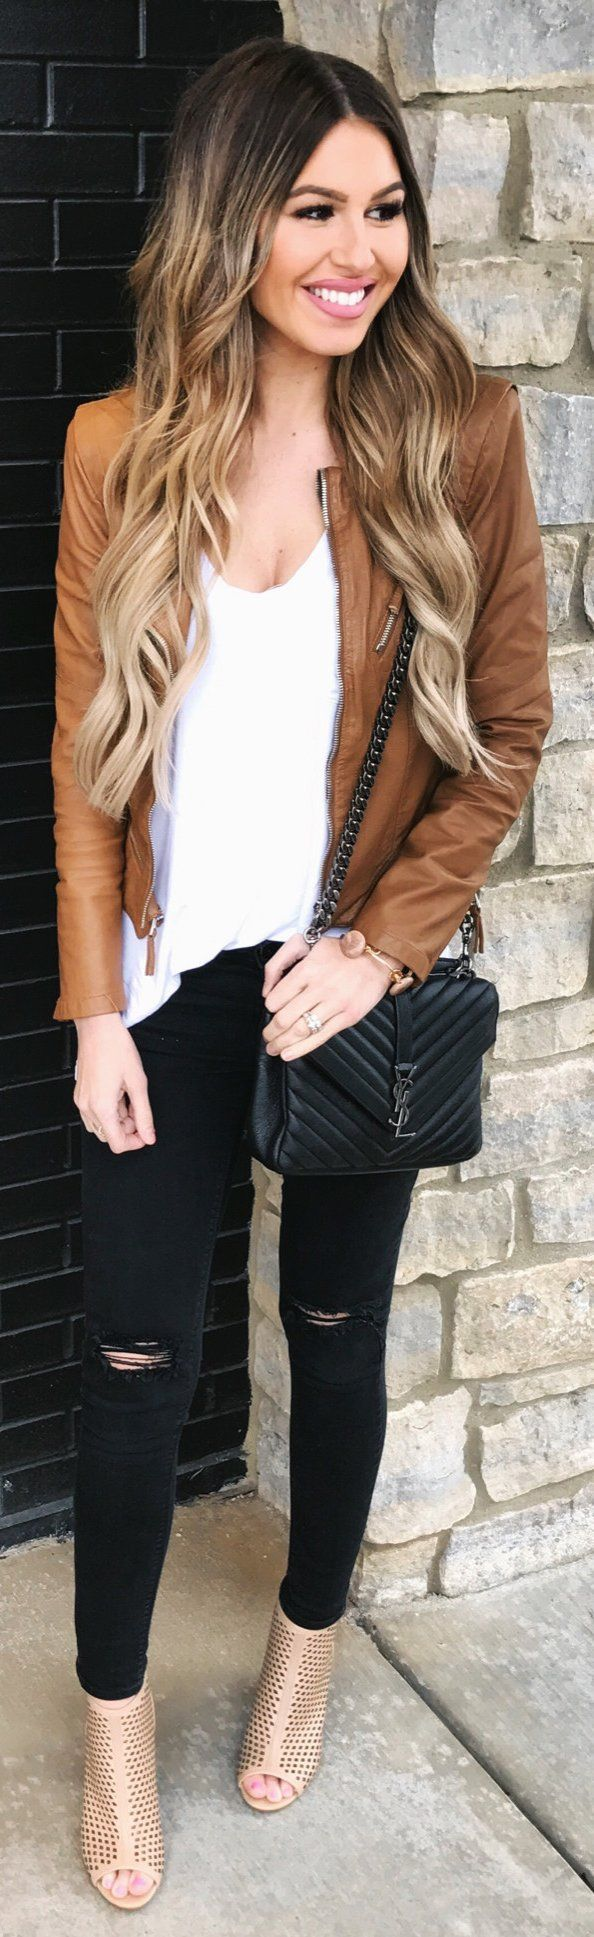 Brown Leather Jacket / White Top / Black Ripped Skinny